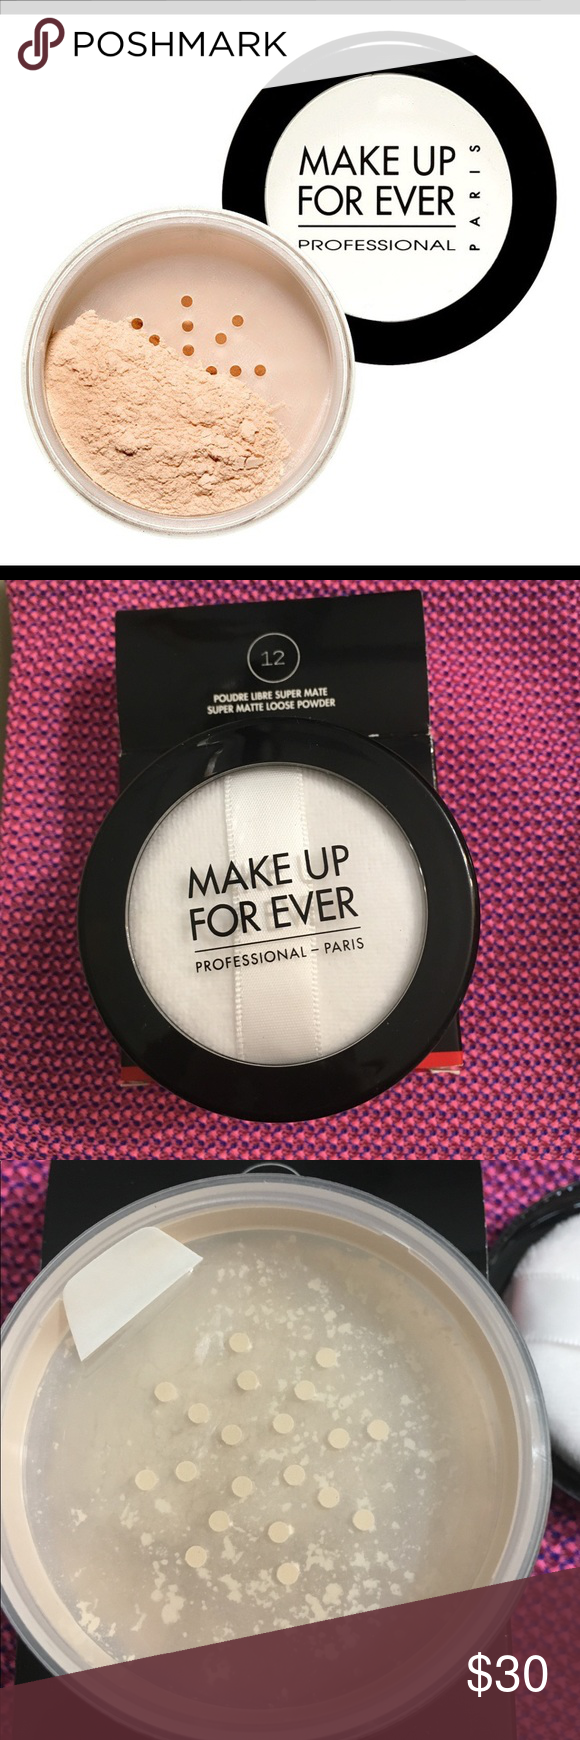 Makeup Forever Loose Face Powder Sealed BNIB in 2020